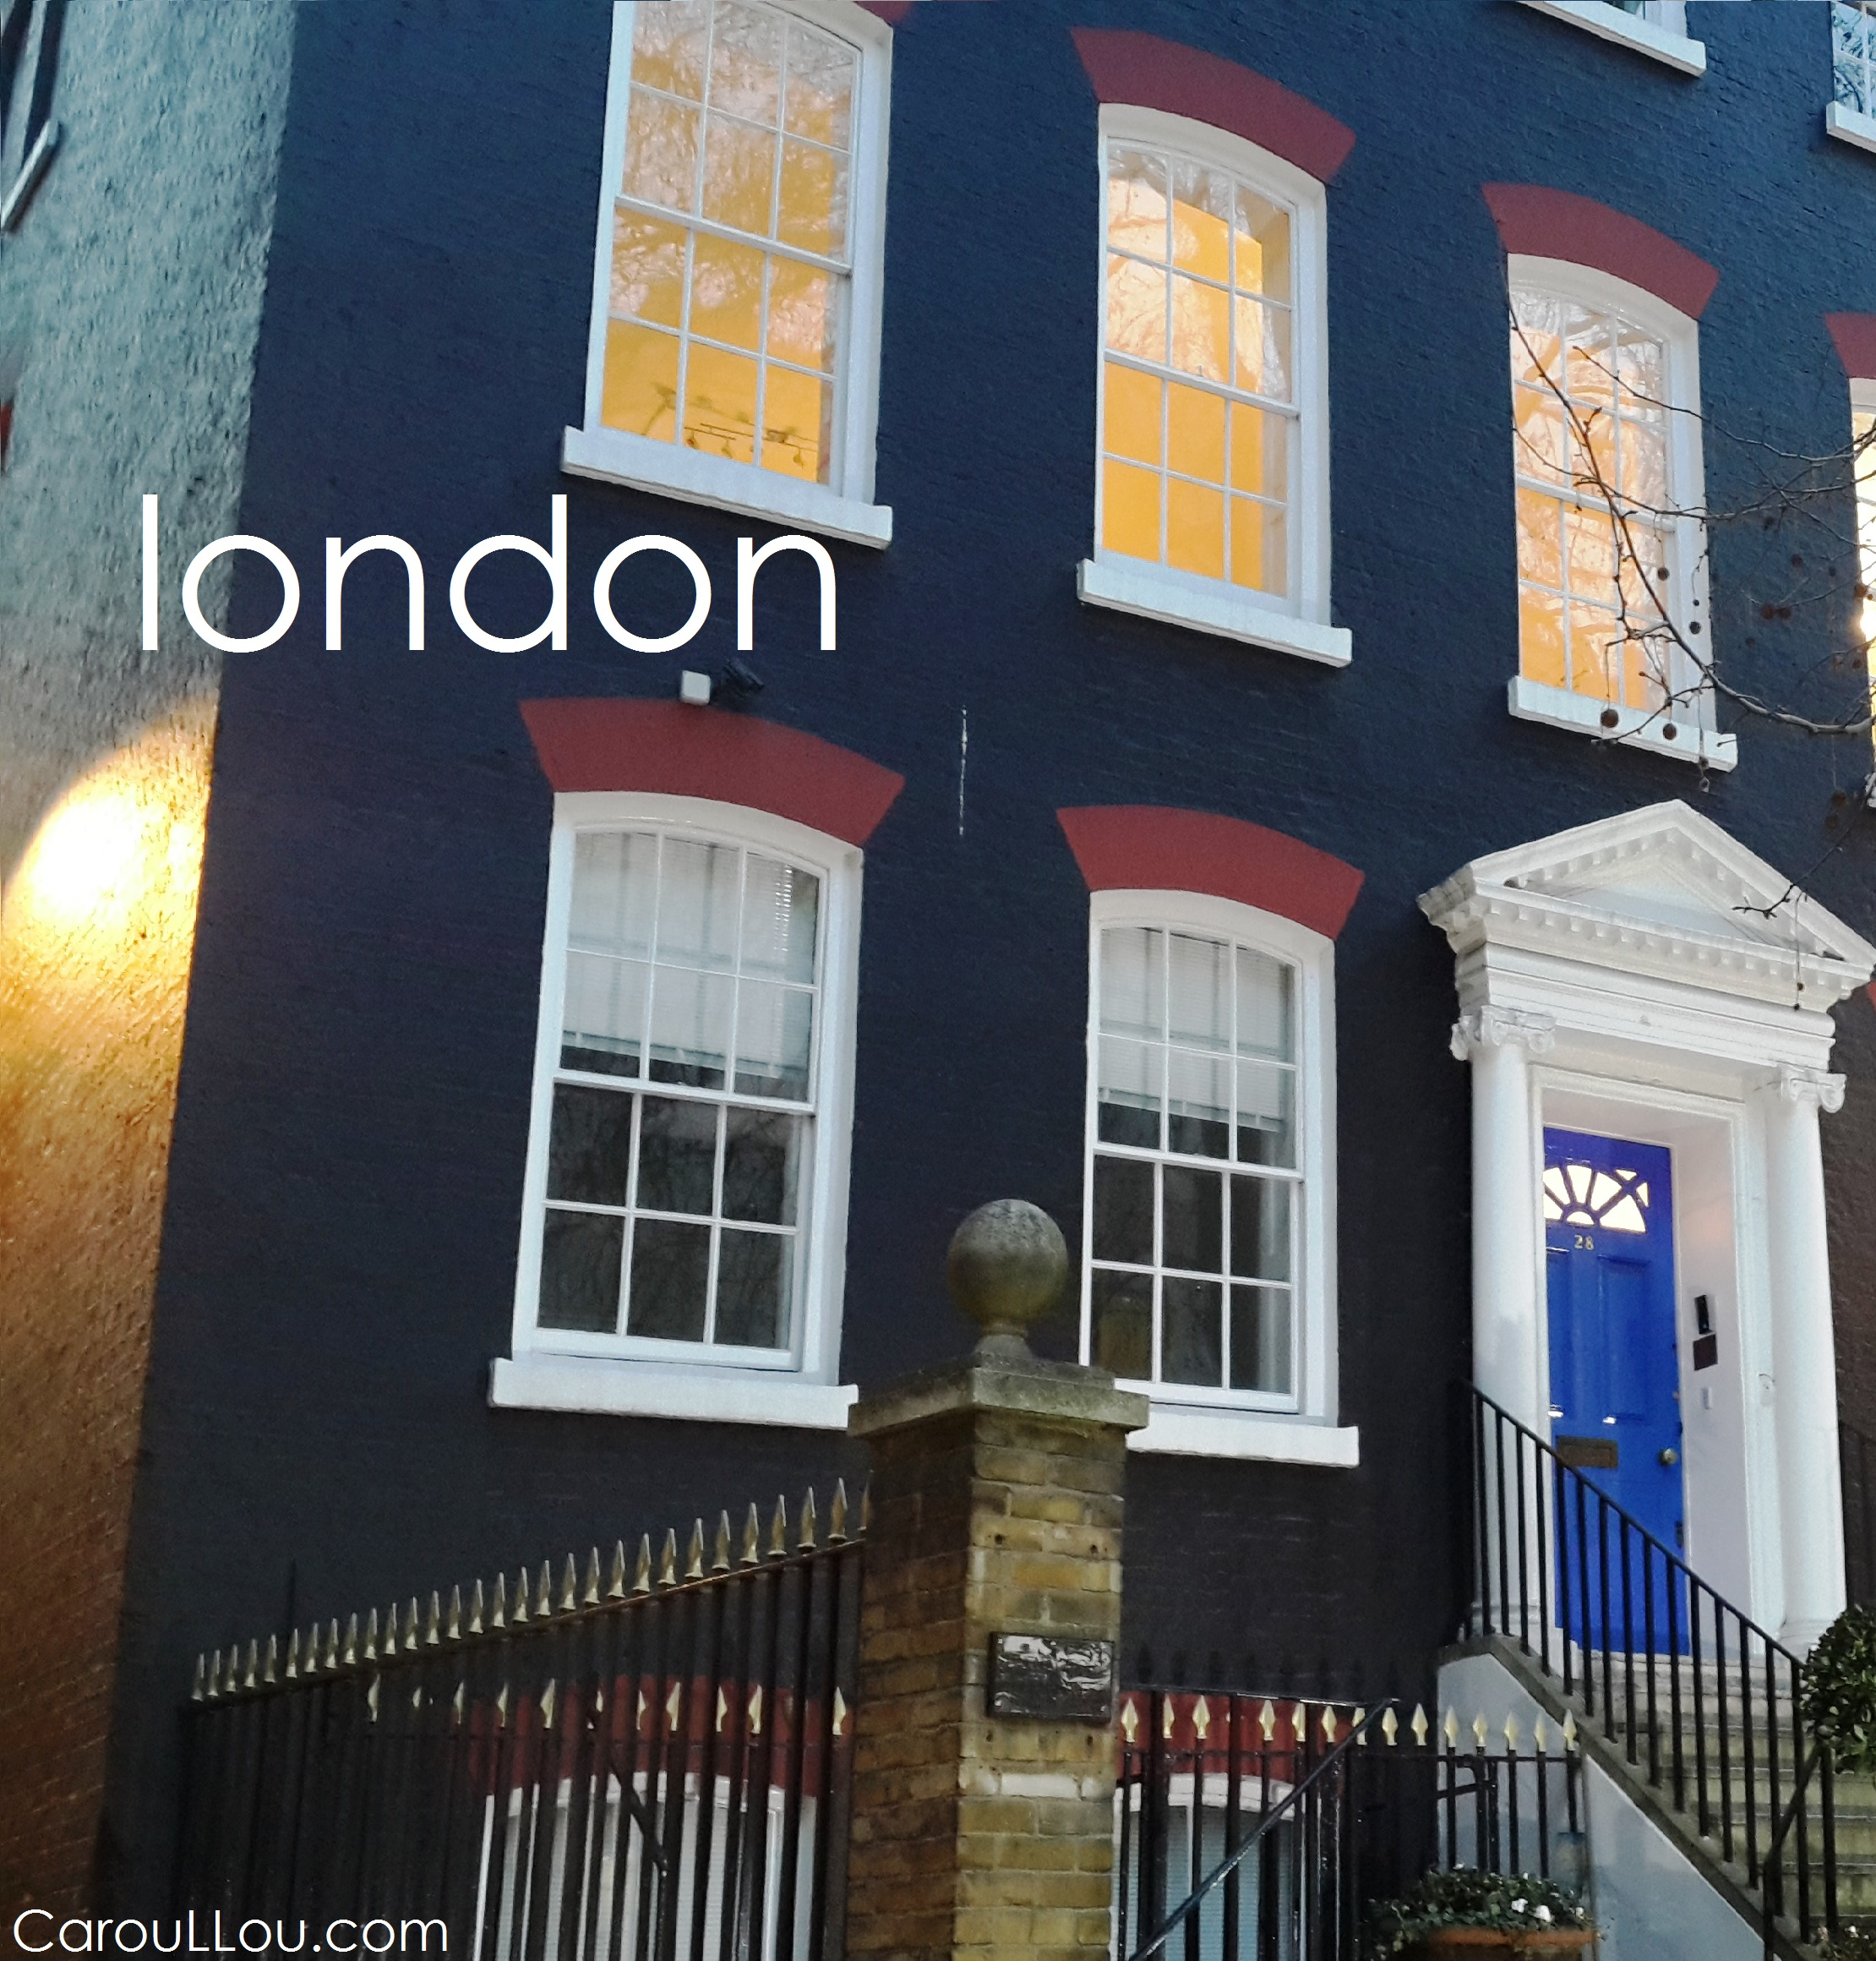 CarouLLou.com CarouLLou in London perspective house +-